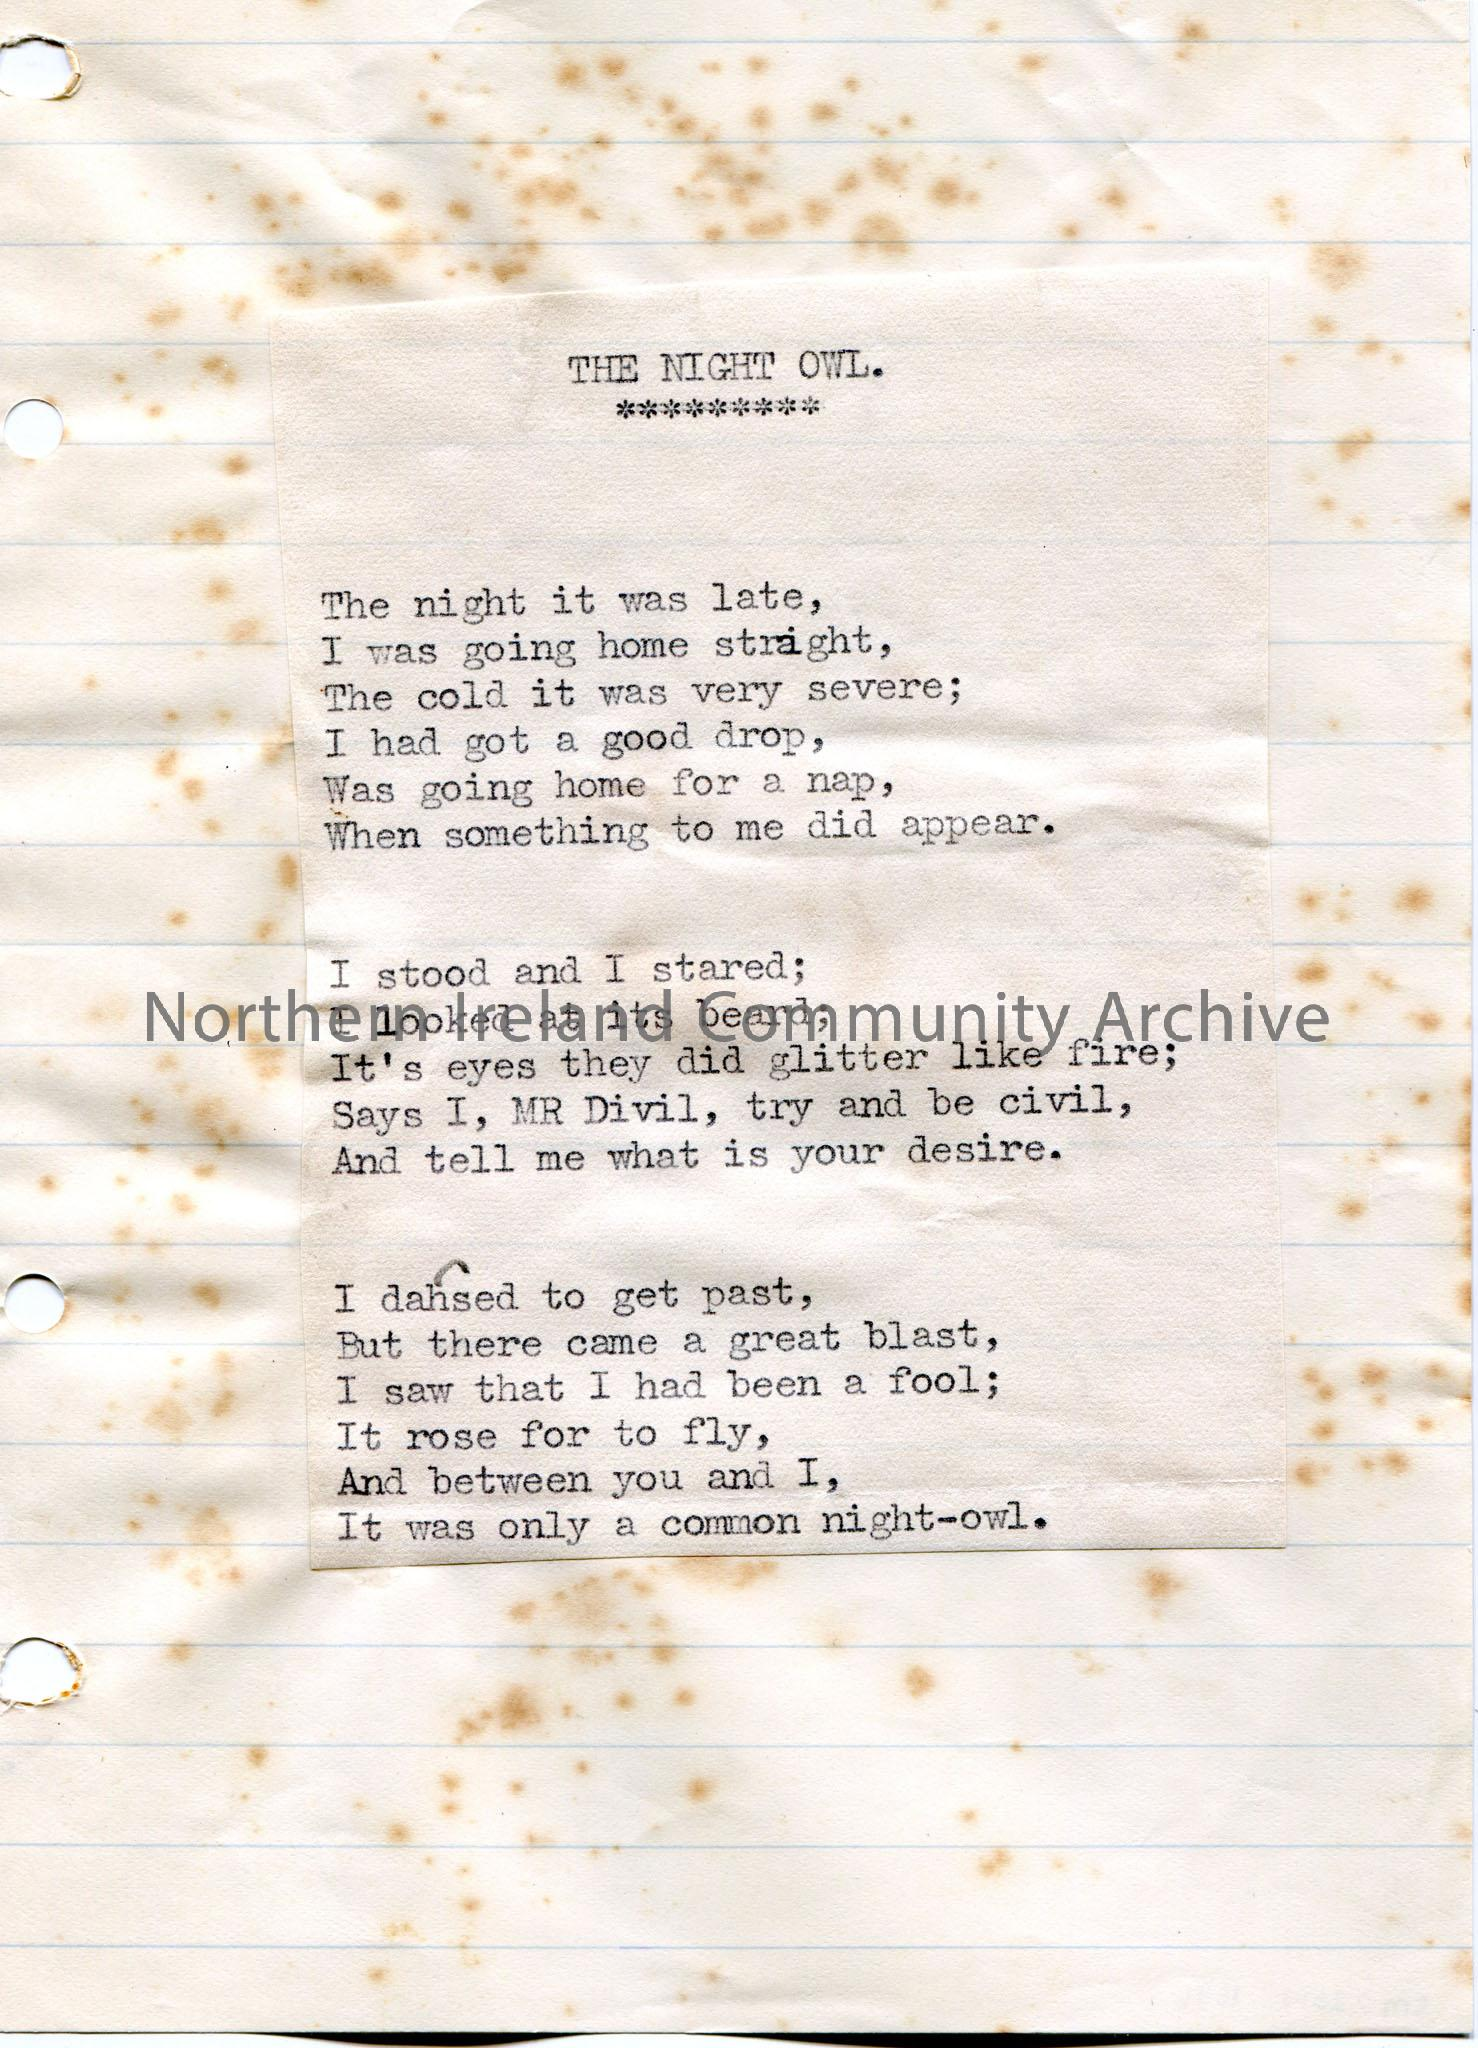 Typed poem or words to song on plain paper and stuck to a larger lined page. Titled, 'The Night Owl'. Someone intoxicated thinks they have seen the de…